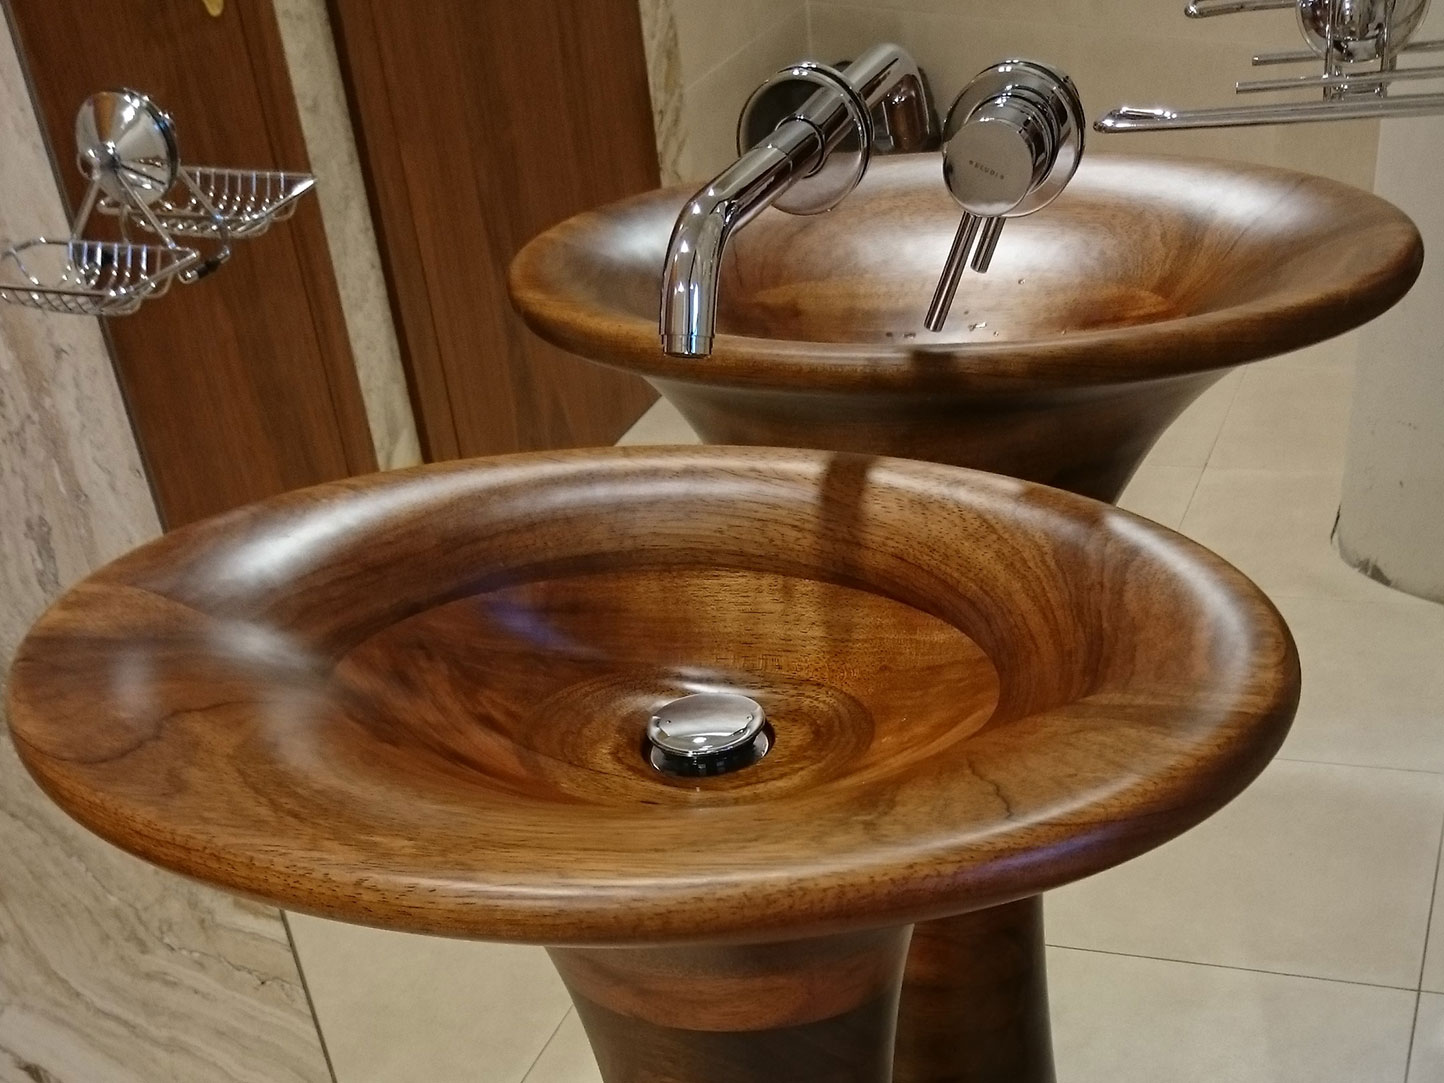 Image no. 1 of Unique Wood Design - Custom wooden washbasin Fuge